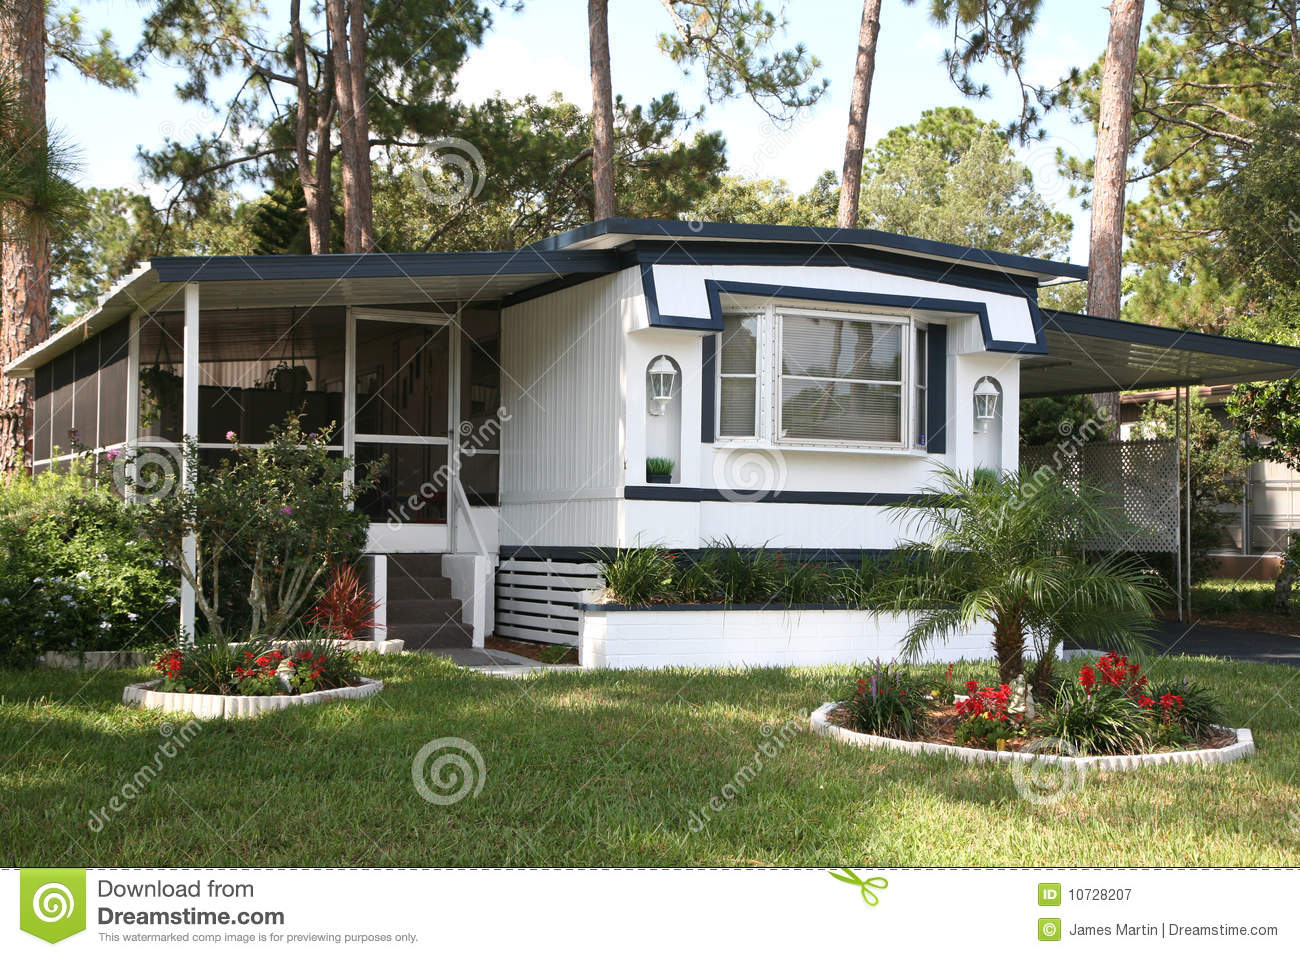 Single Wide Mobile Home Royalty Free Stock Photography